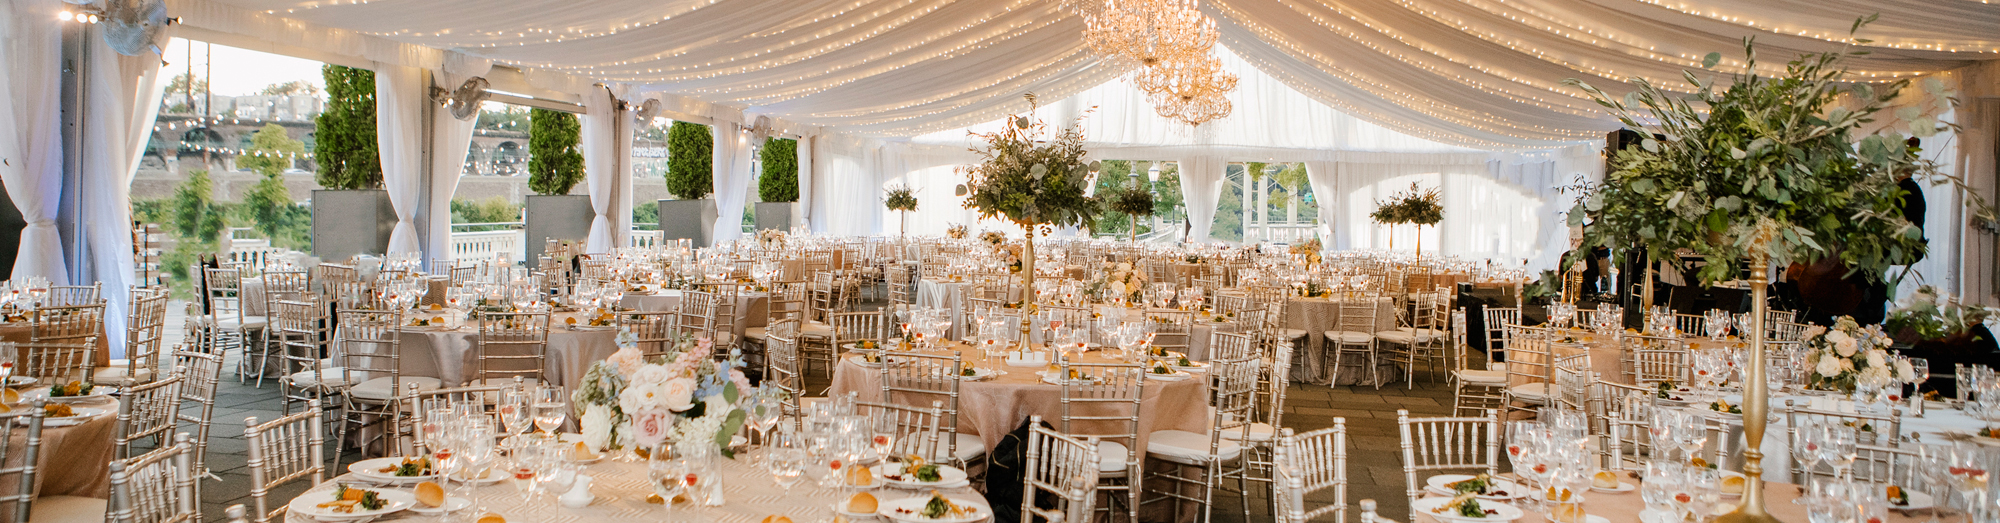 Albrecht Events - Philadelphia Event Planner